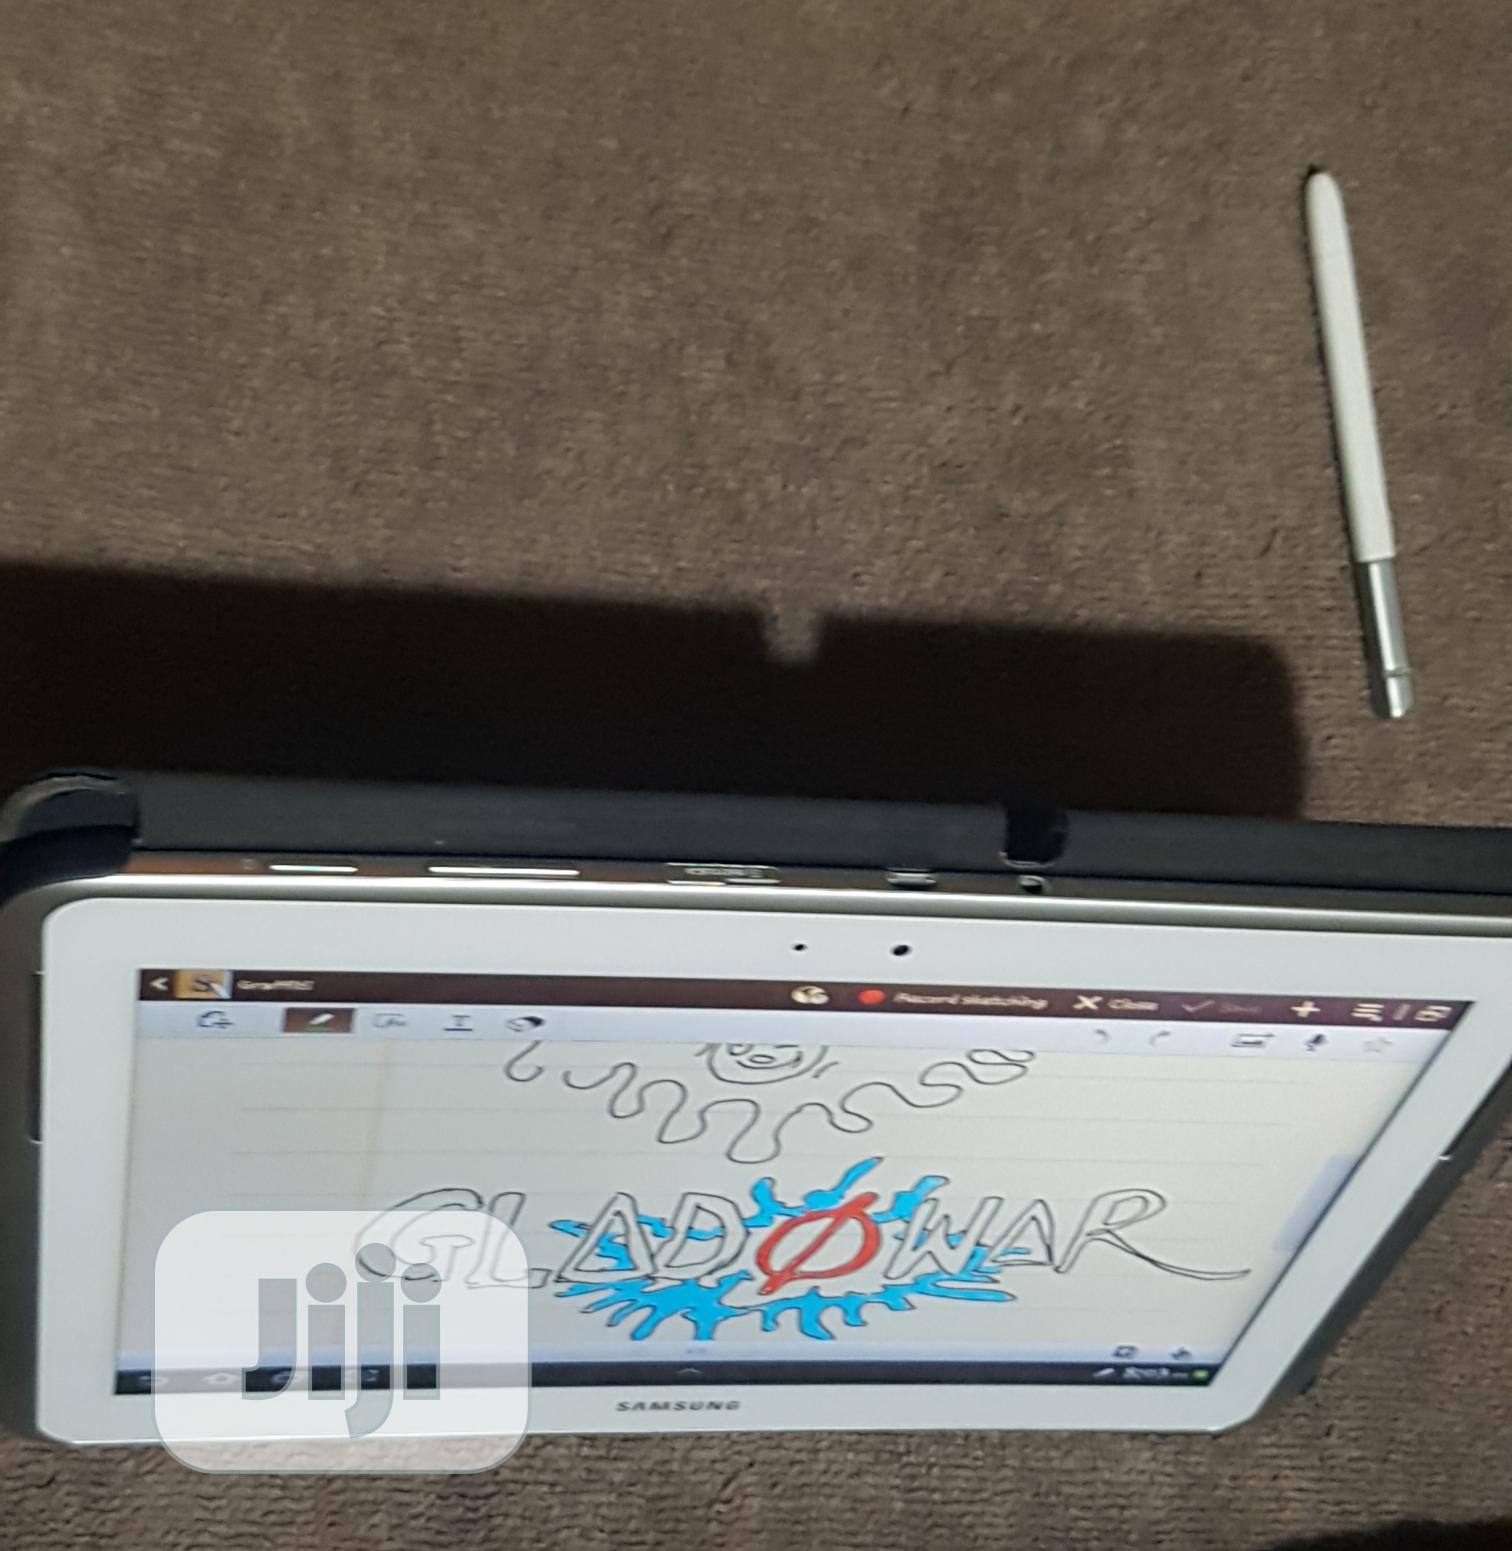 Samsung Galaxy Note 10.1 (2014 Edition) 16 GB White   Tablets for sale in Awka, Anambra State, Nigeria